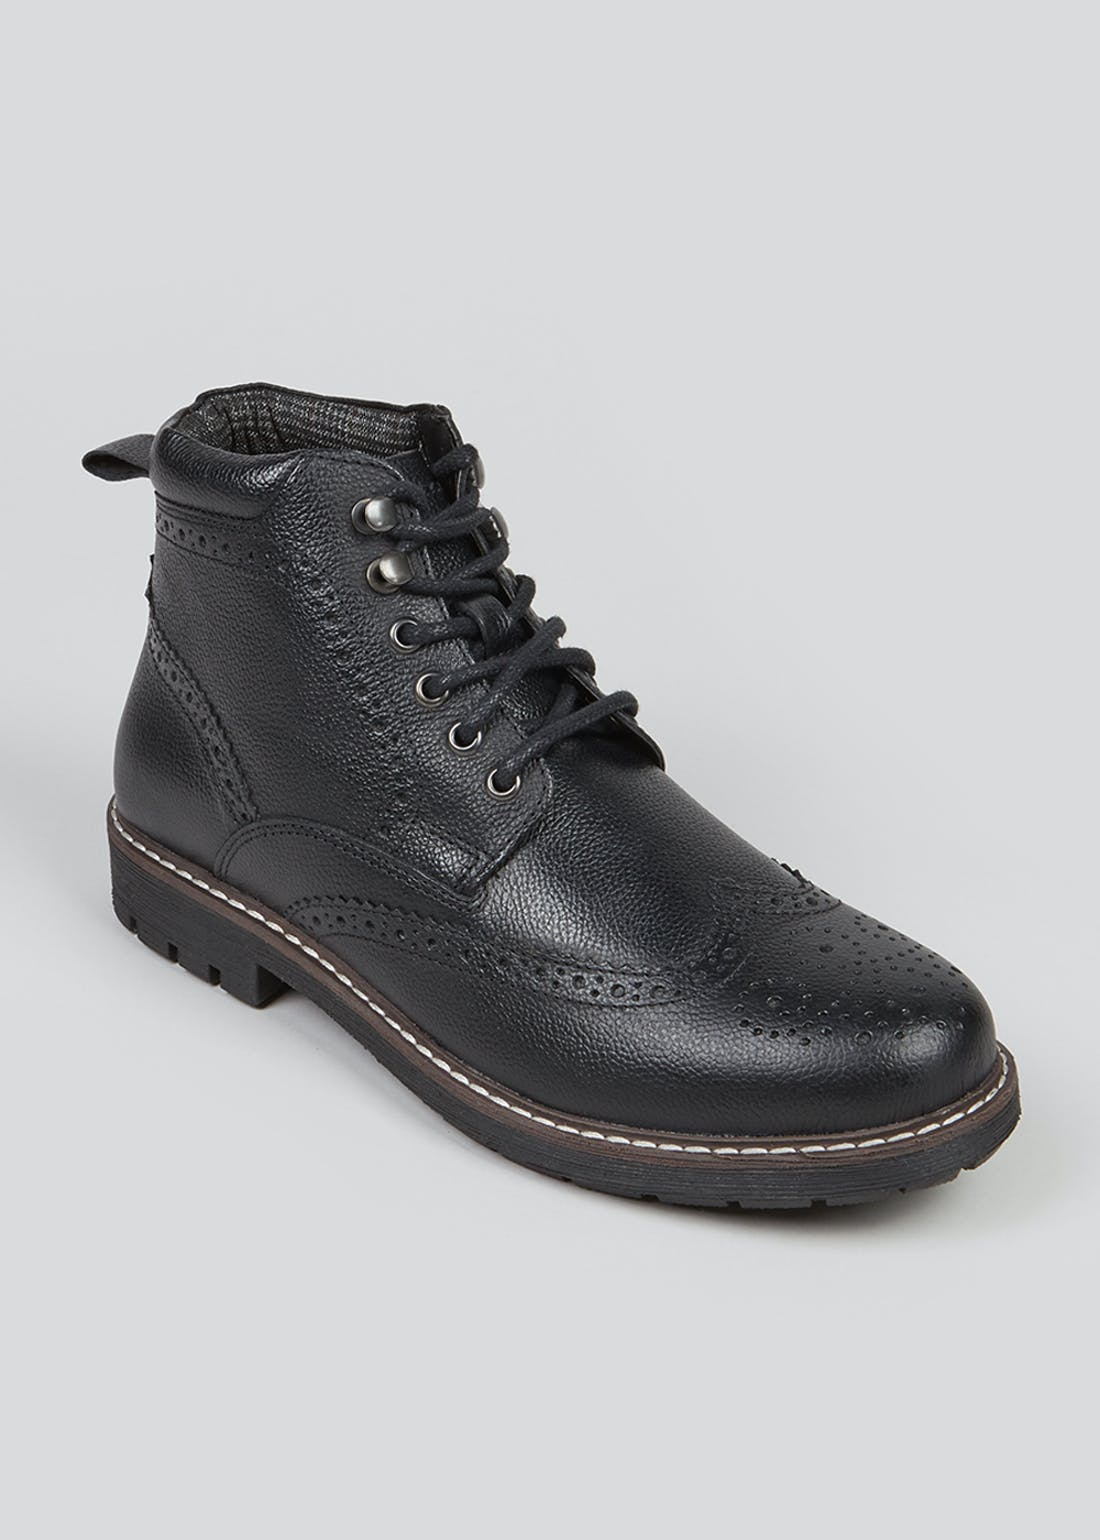 Black Leather Brogue Boot